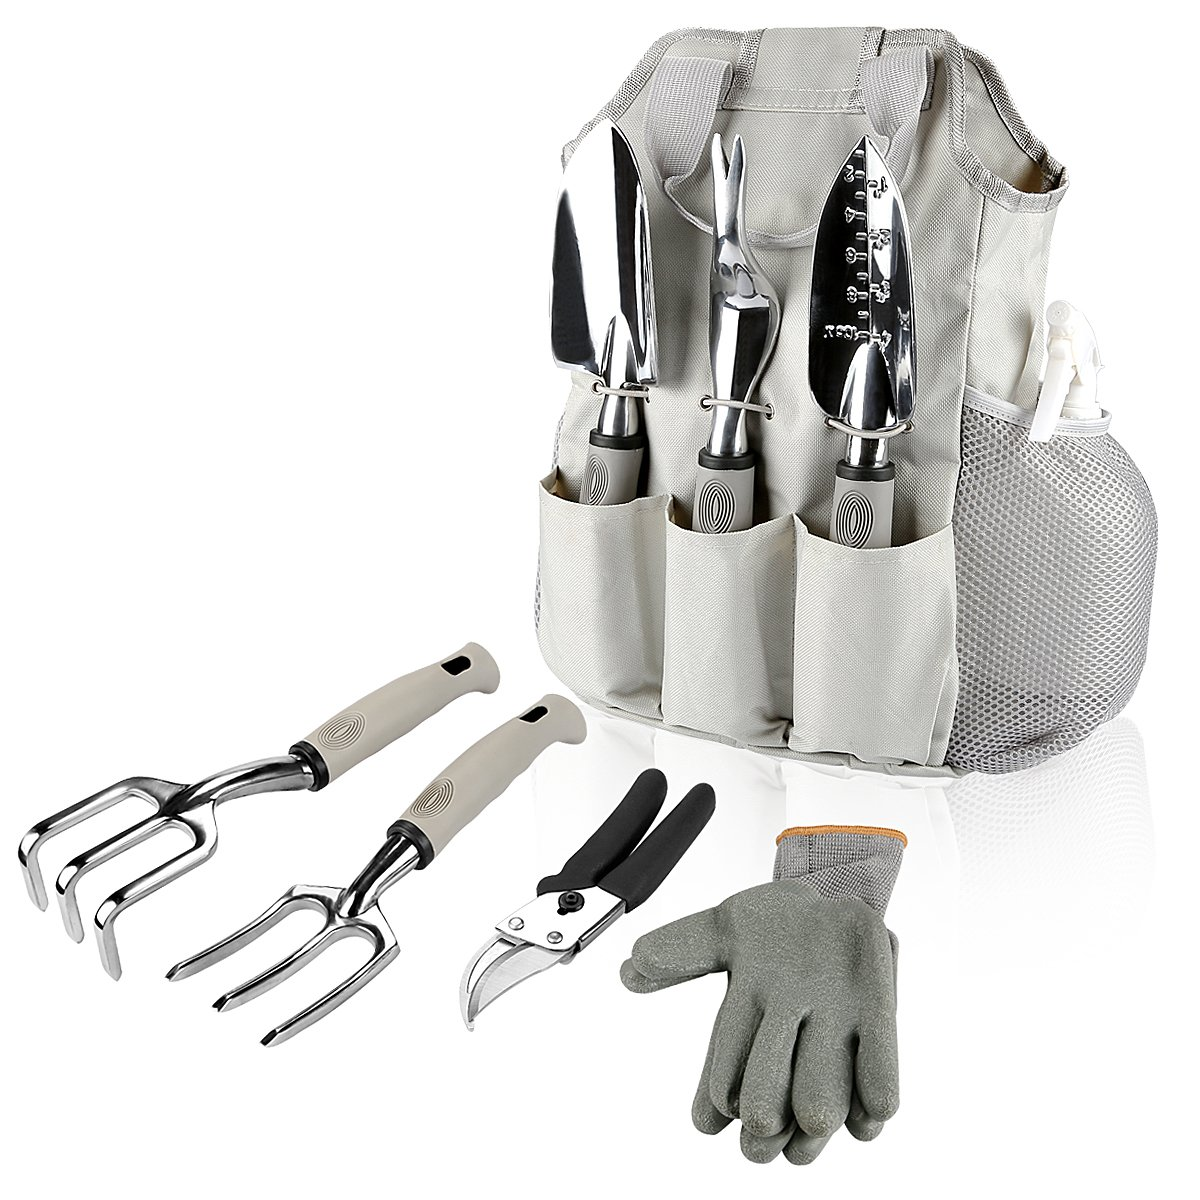 Energup 9 Piece Garden Tools Set Gardening Gifts Tools with Garden Gloves and Garden Tote Garden Trowel Pruners and More - Vegetable Herb Garden Hand Tools with Storage Tote